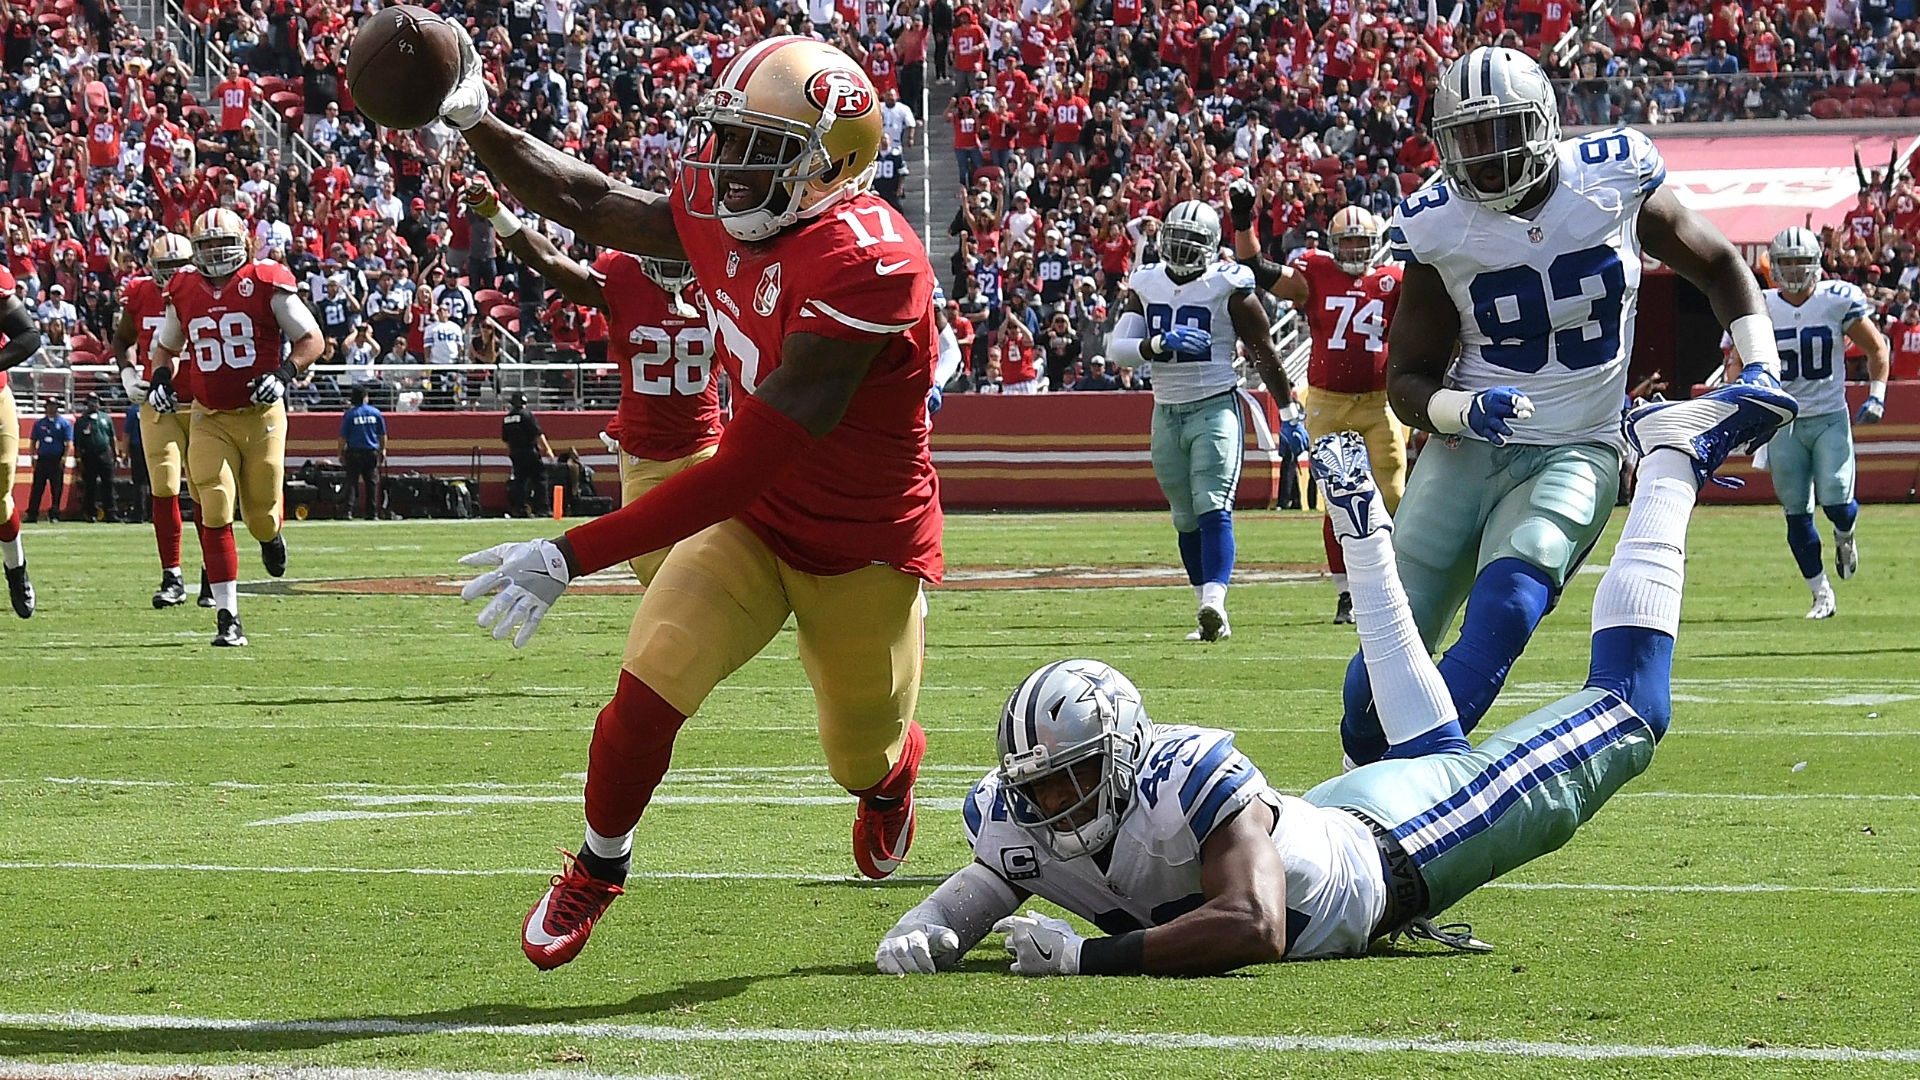 49ers re-sign leading receiver Jeremy Kerley to 3-year deal